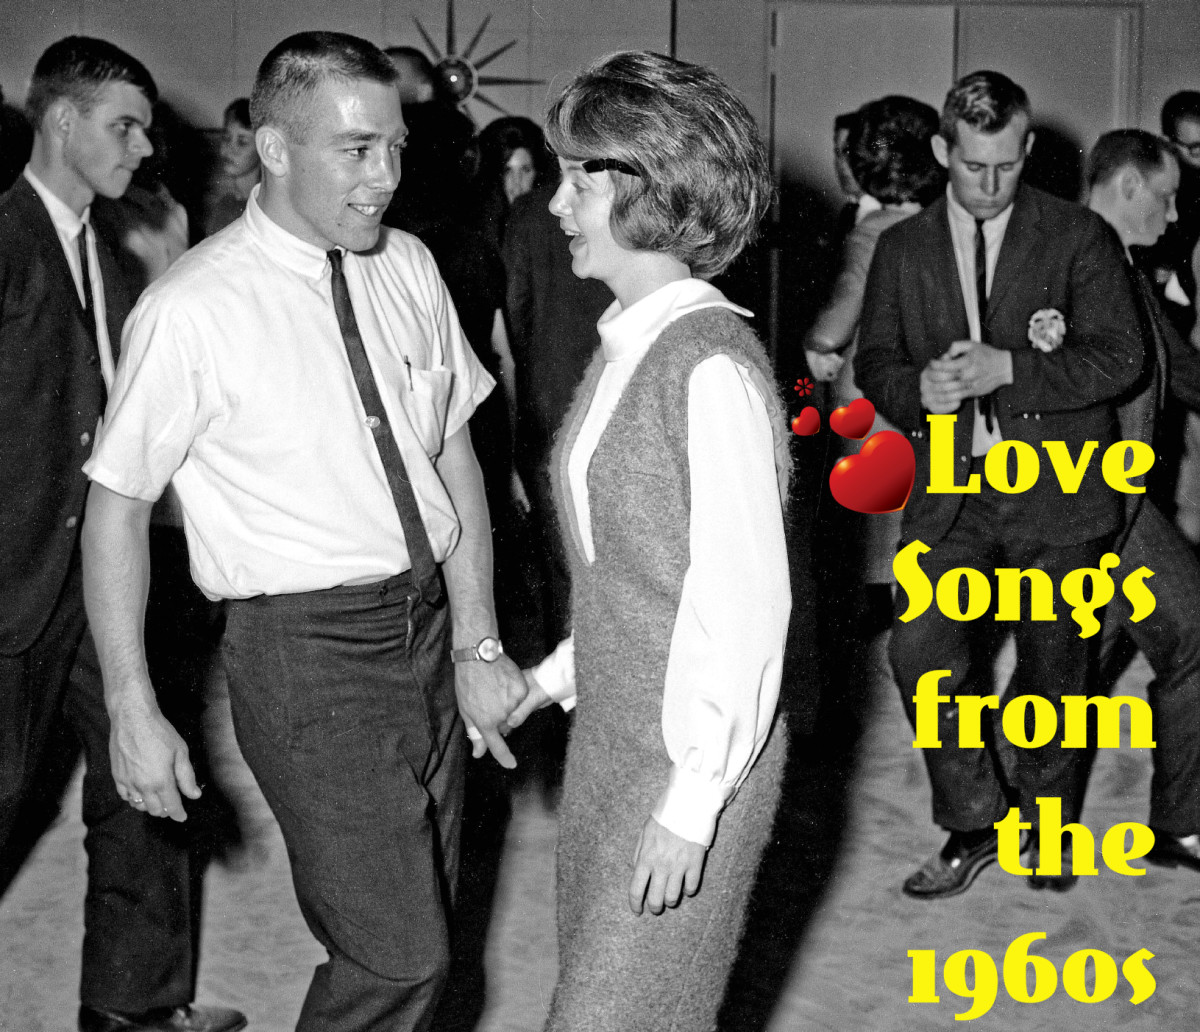 107 Love Songs From the 1960s